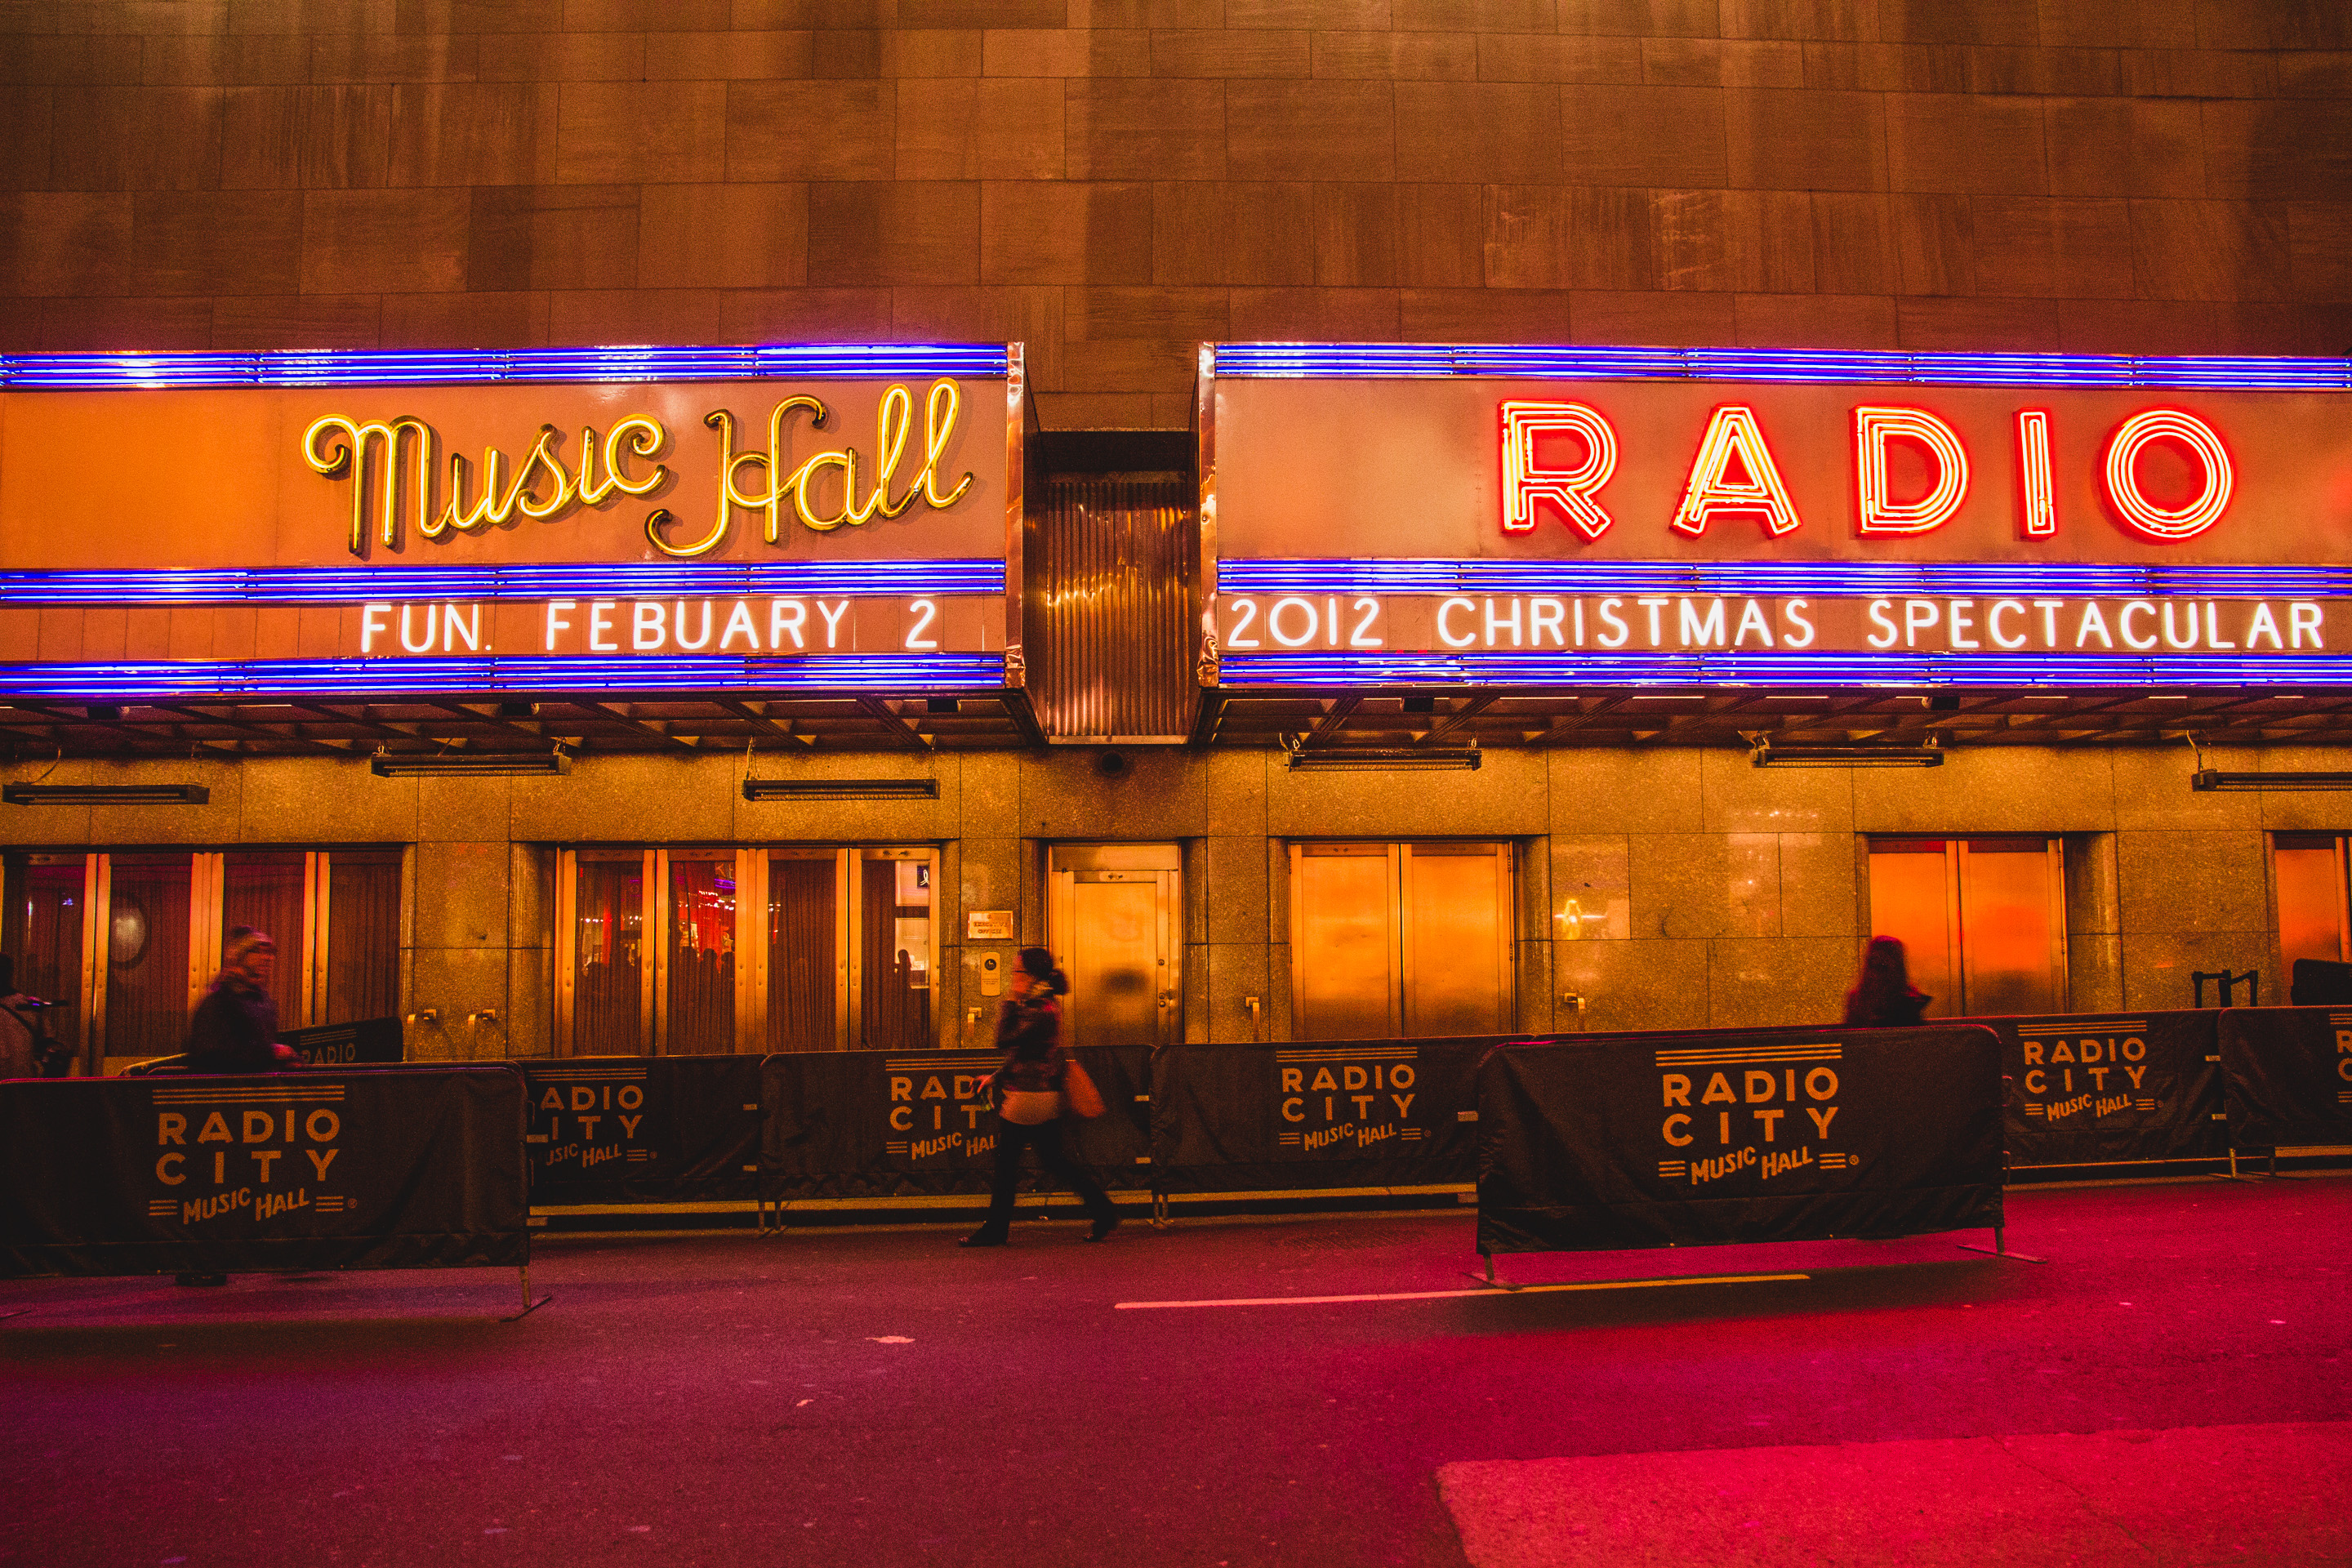 172 · Radio City Music Hall Click to view previous post